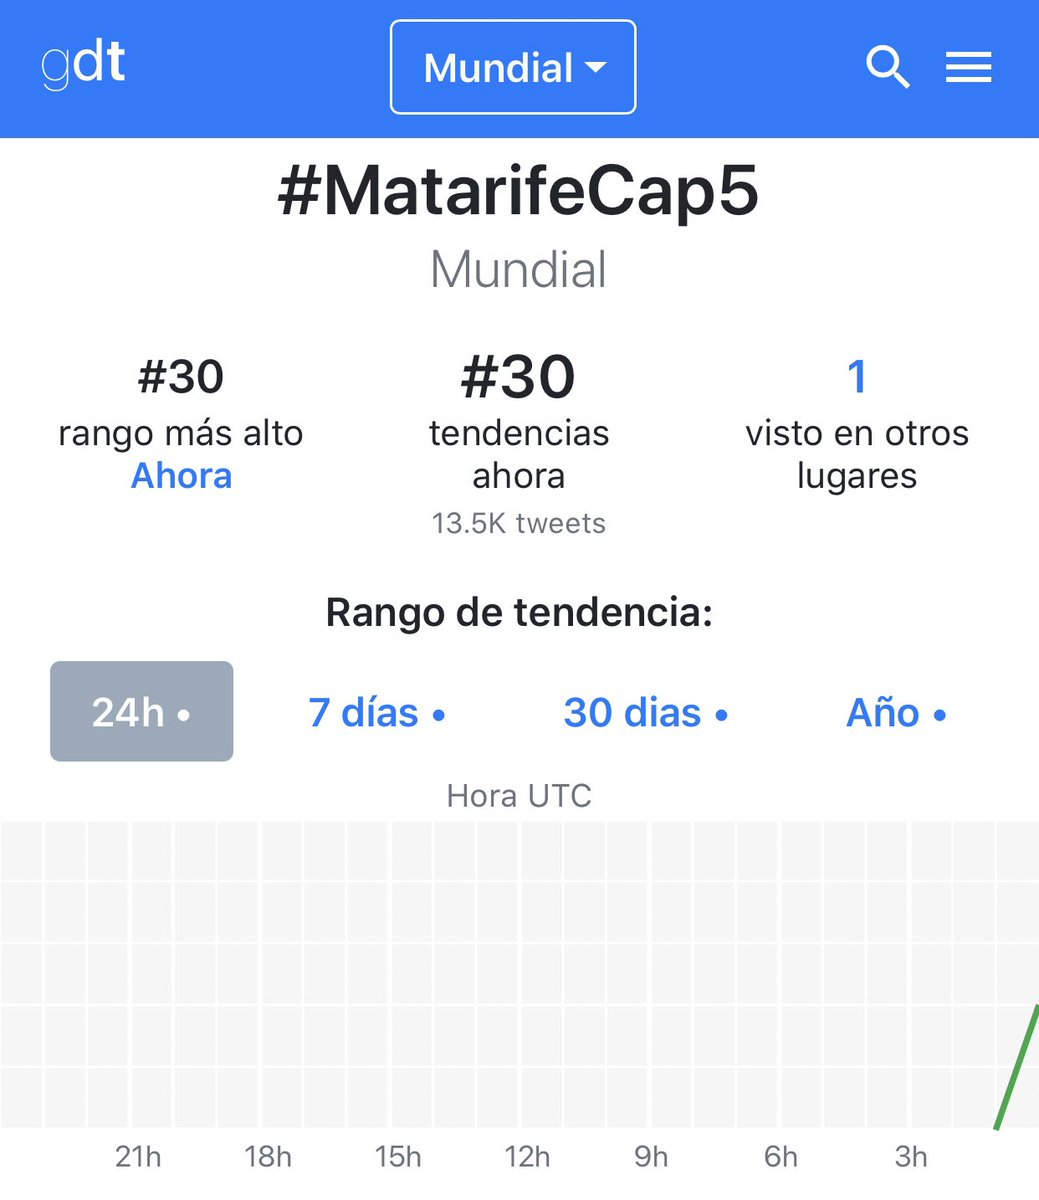 Matarife es tendencia Mundial #MatarifeCap5 @alvarouribevel   https://t.co/CeUgucboqO https://t.co/YQQD0qK1bb